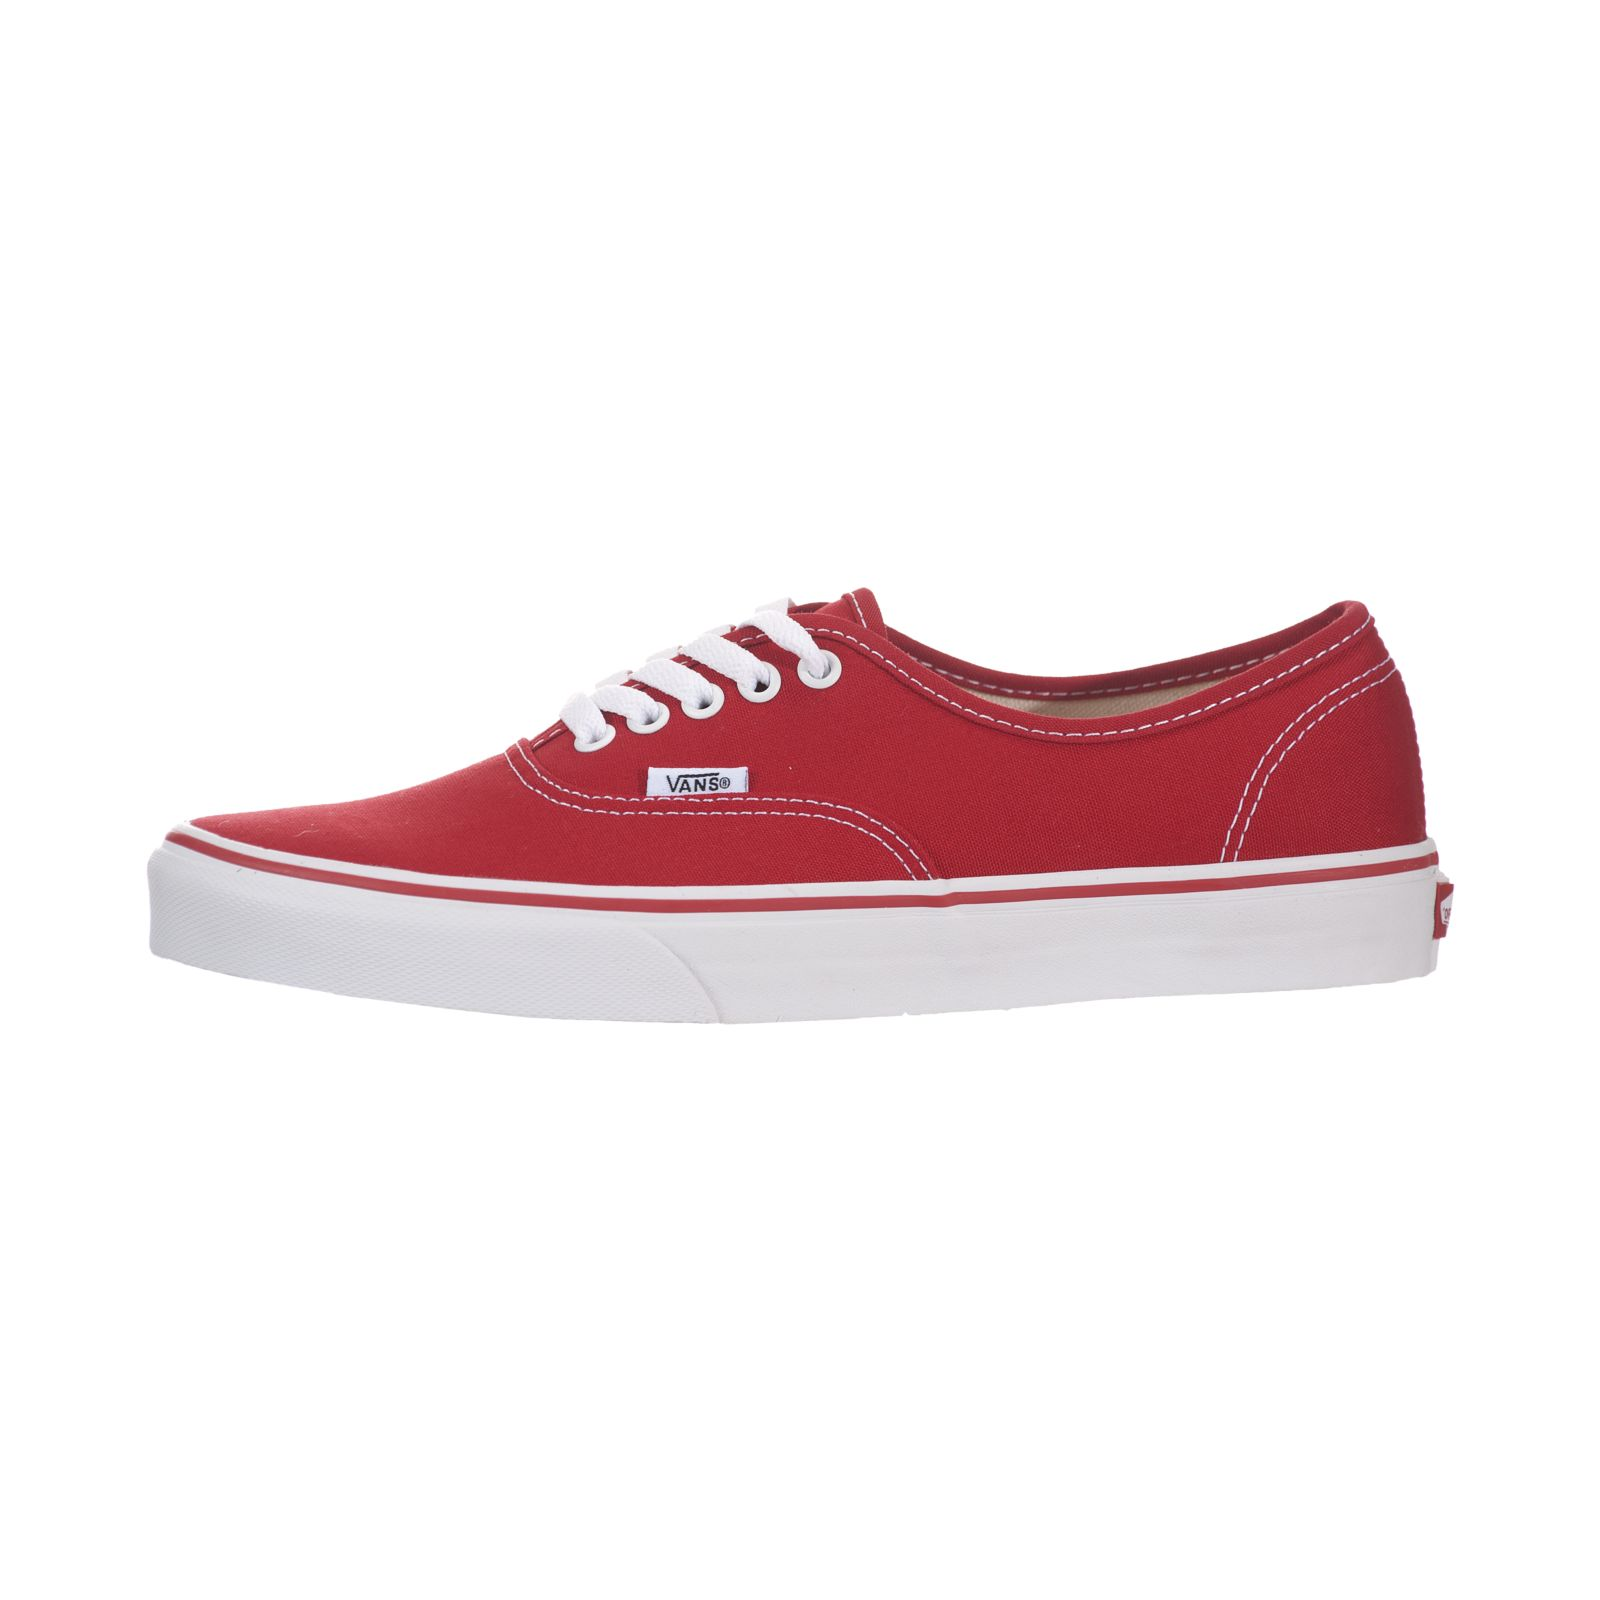 613b39cdd0 VANS Classic Authentic Red White Mens US Size 8.5 Womens 10 for ...